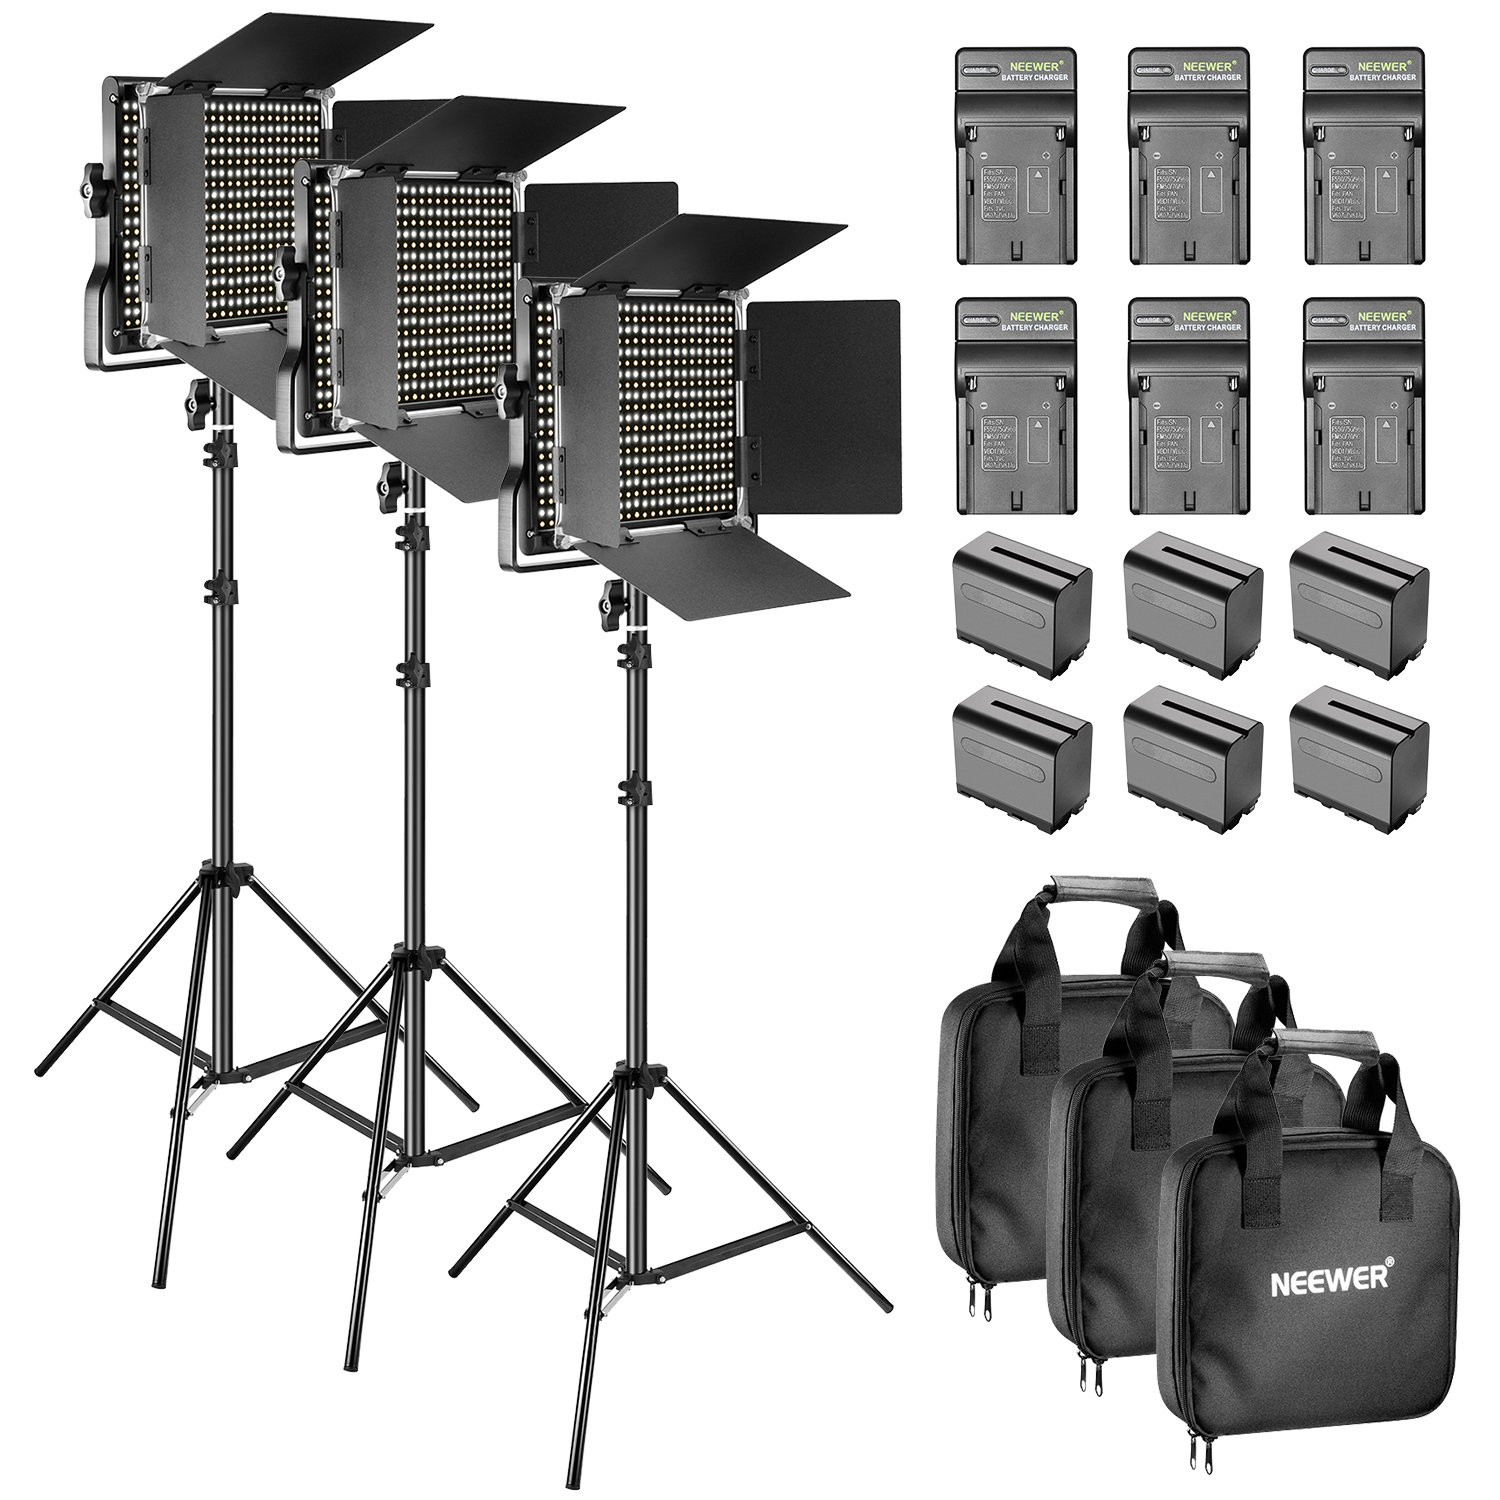 Neewer Bi-Color LED Video Light and Stand Kit with Battery and Charger-660 LED with U Bracket and Barndoor(3200-5600K, CRI 96+), 3-6.5 Feet Adjustable Light Stand for Studio, YouTube Shooting (3 pack) by Neewer